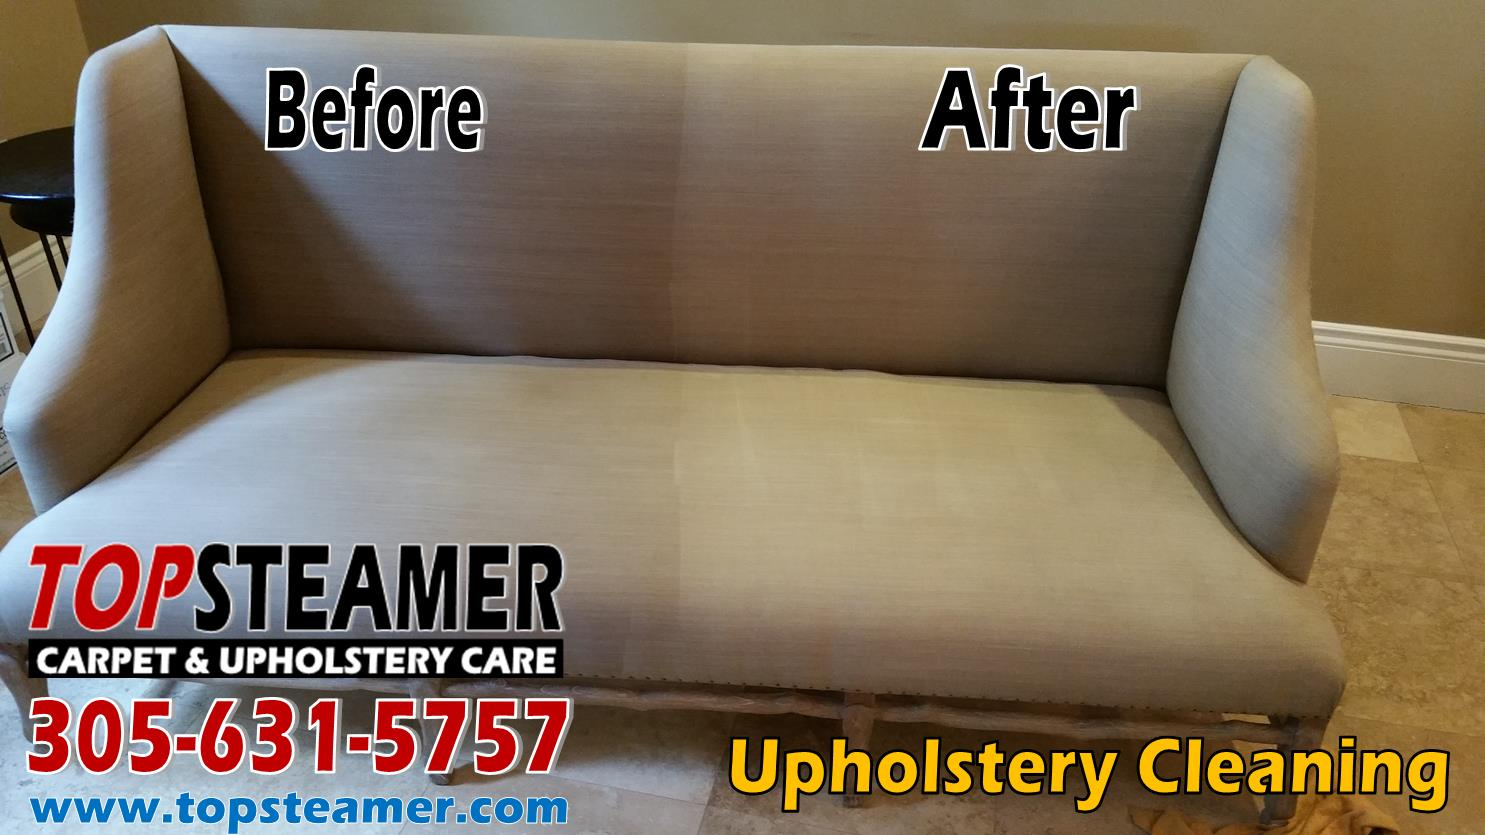 Carpet Cleaning Miami About Us Top Steamer Upholstery